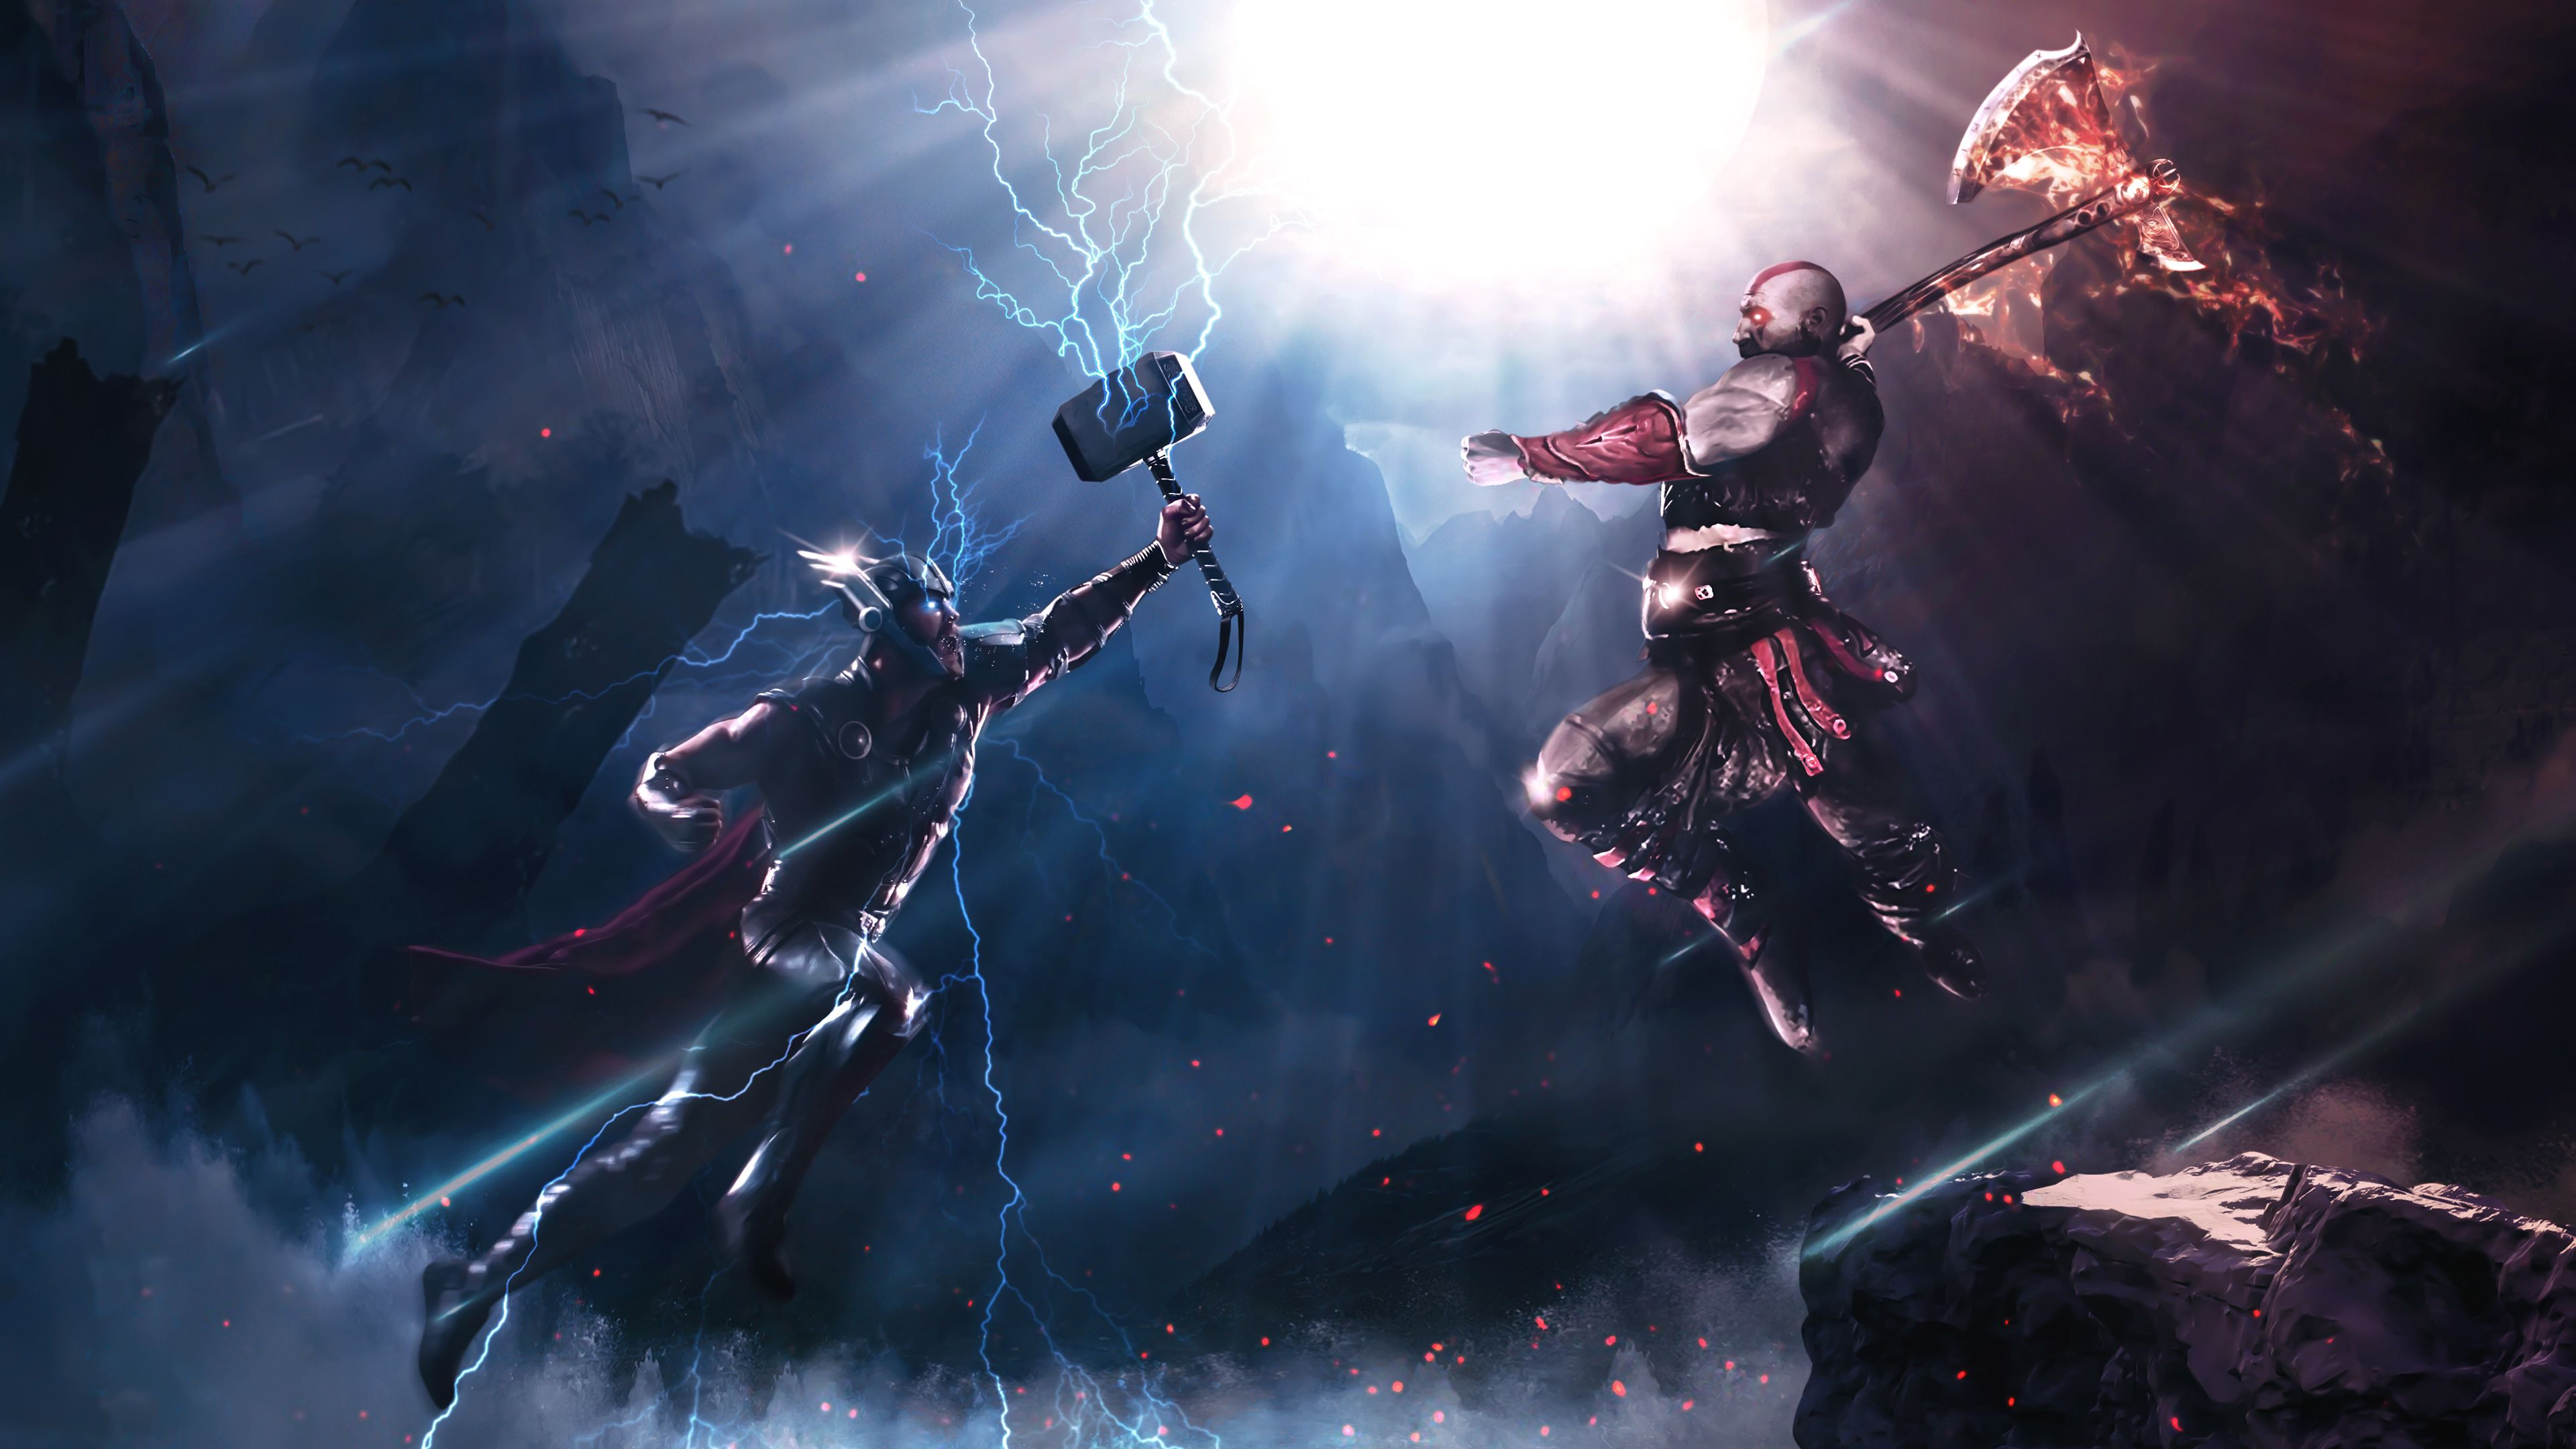 Wallpaper 4k Thor Vs Kratos Art 4k 4kwallpapers, artwork